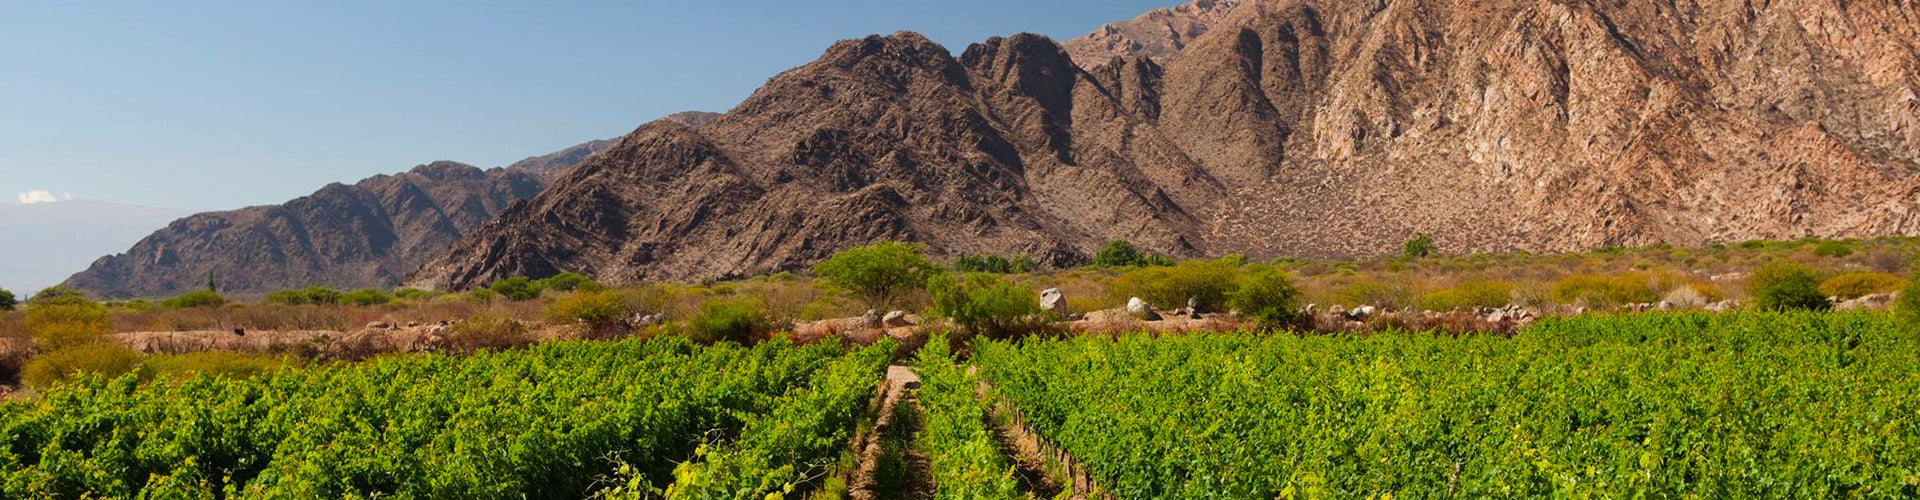 Amalaya Vineyards in Salta